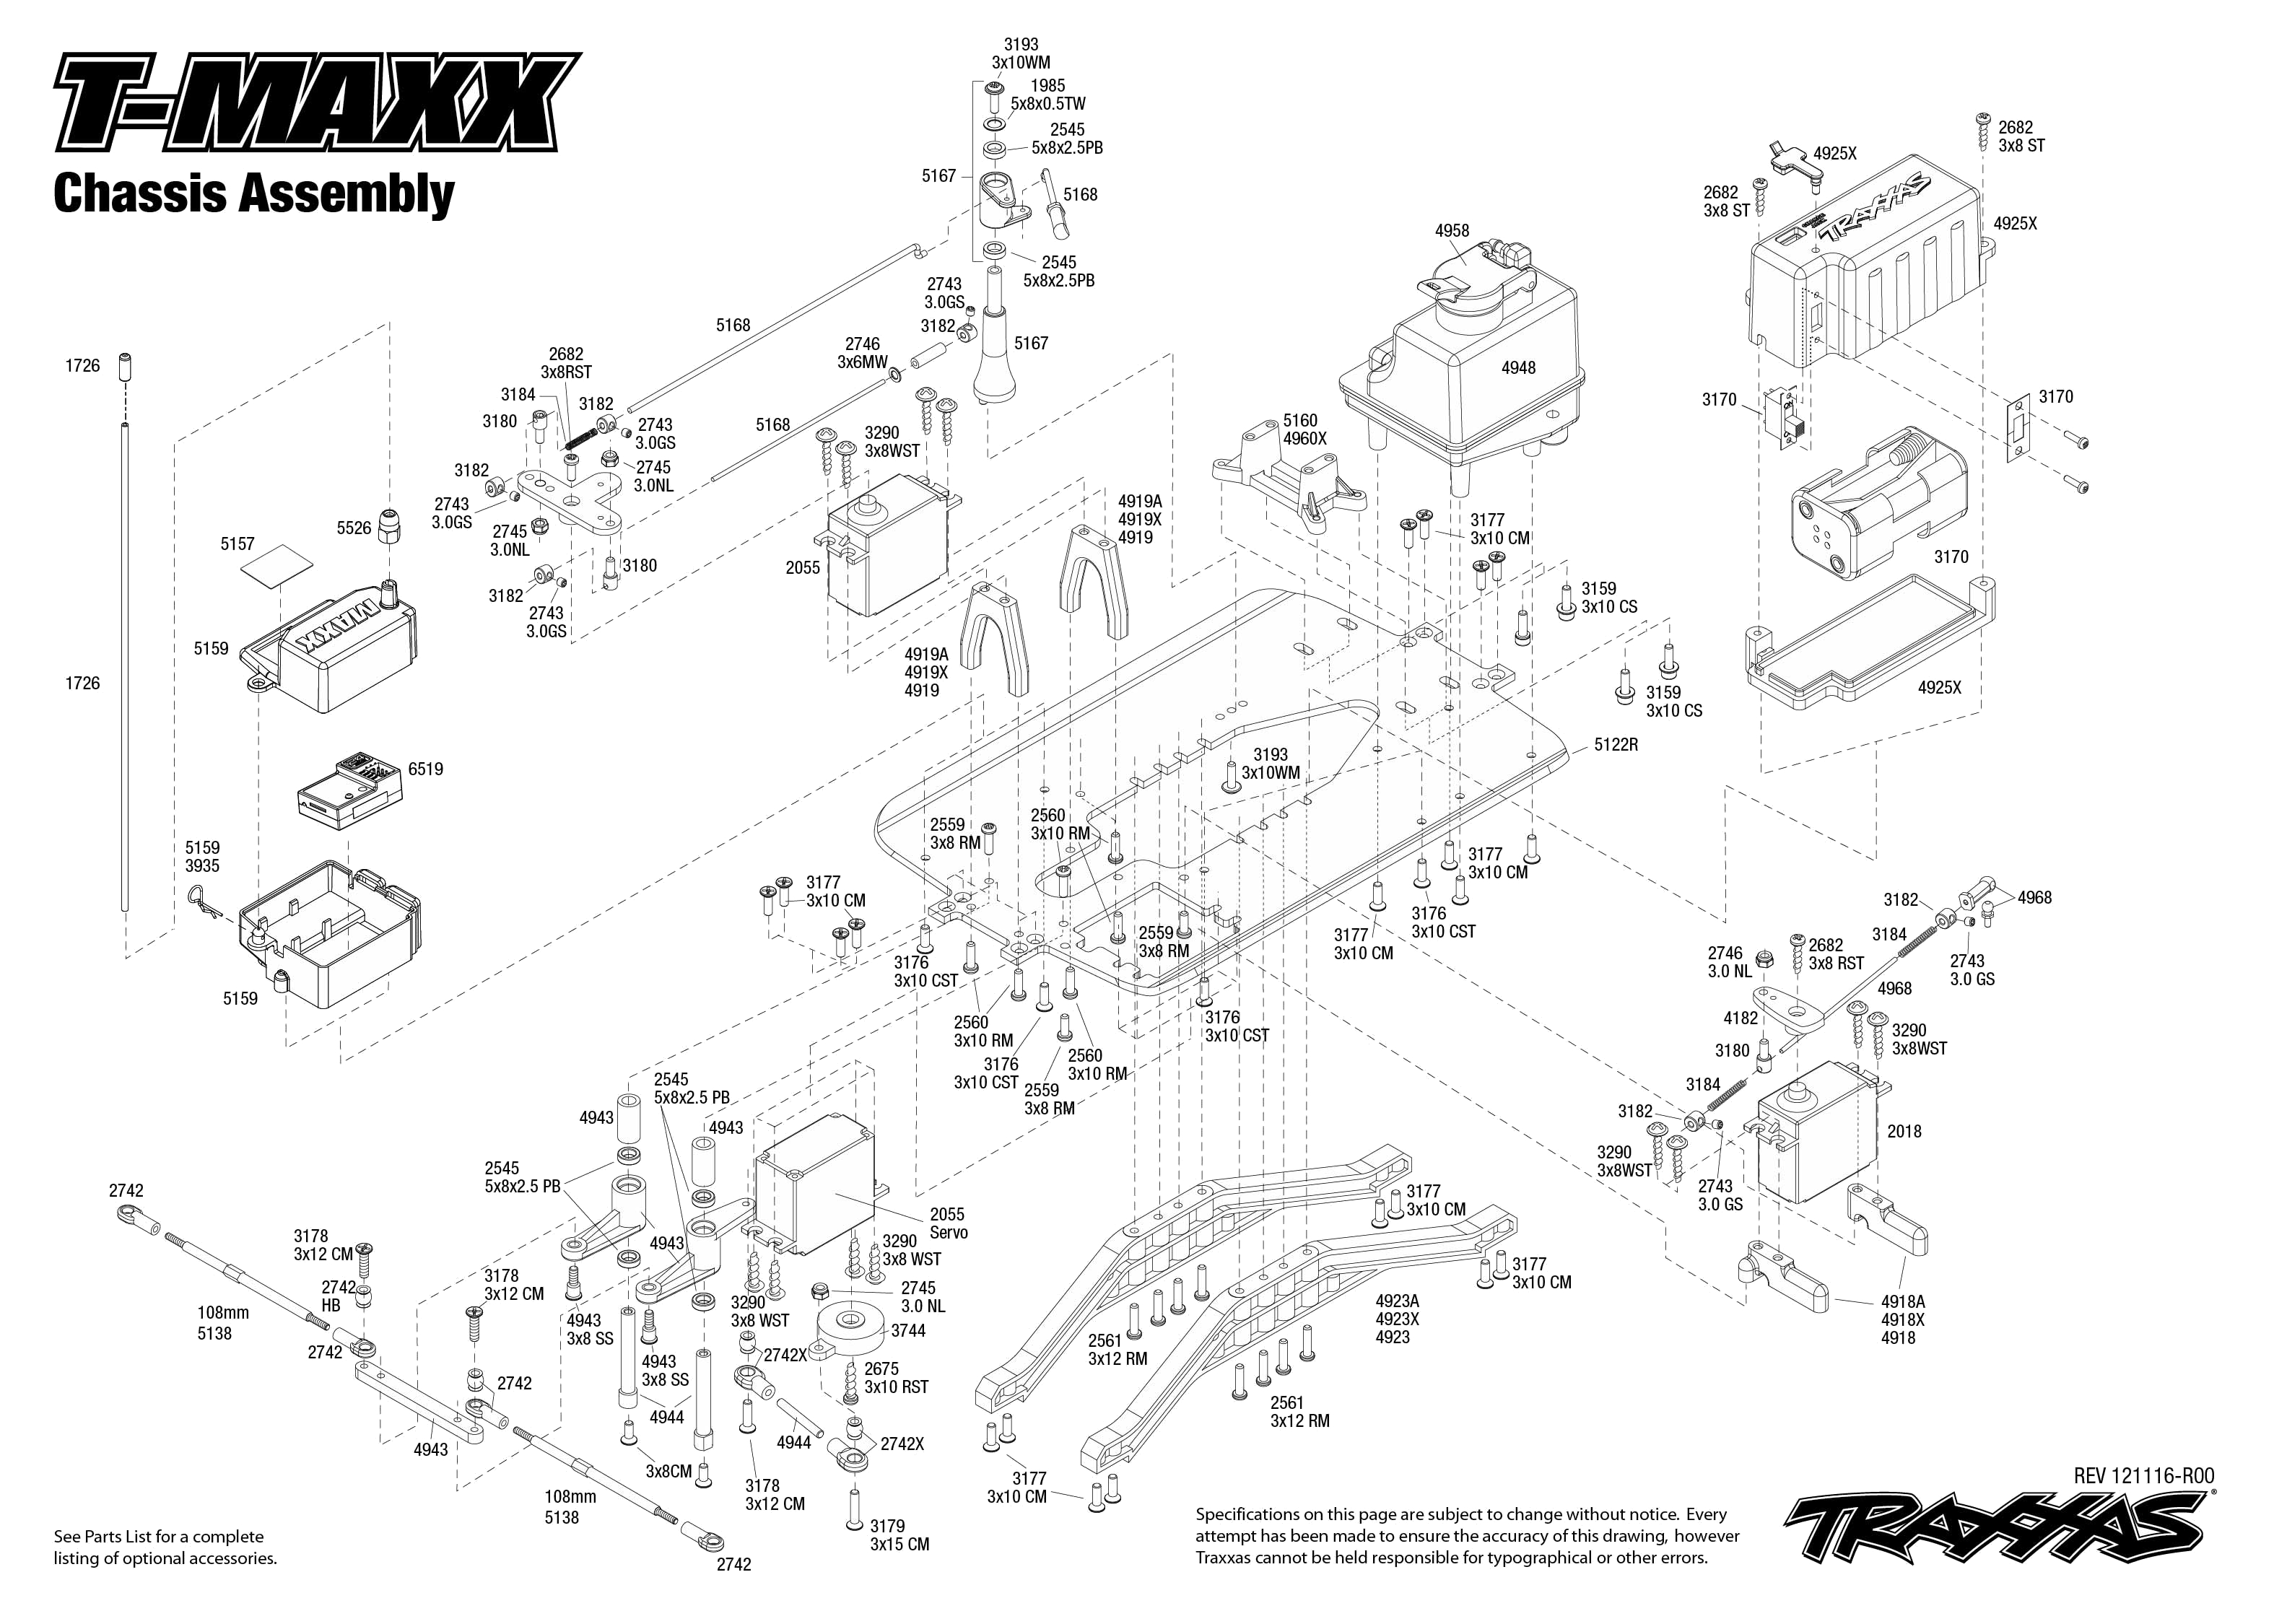 [DIAGRAM_38IU]  WRG-7916] Traxxas 2 5 Engine Diagram | Traxxas 2 5 Engine Diagram |  | genesisbestsellercollections050818.mx.tl